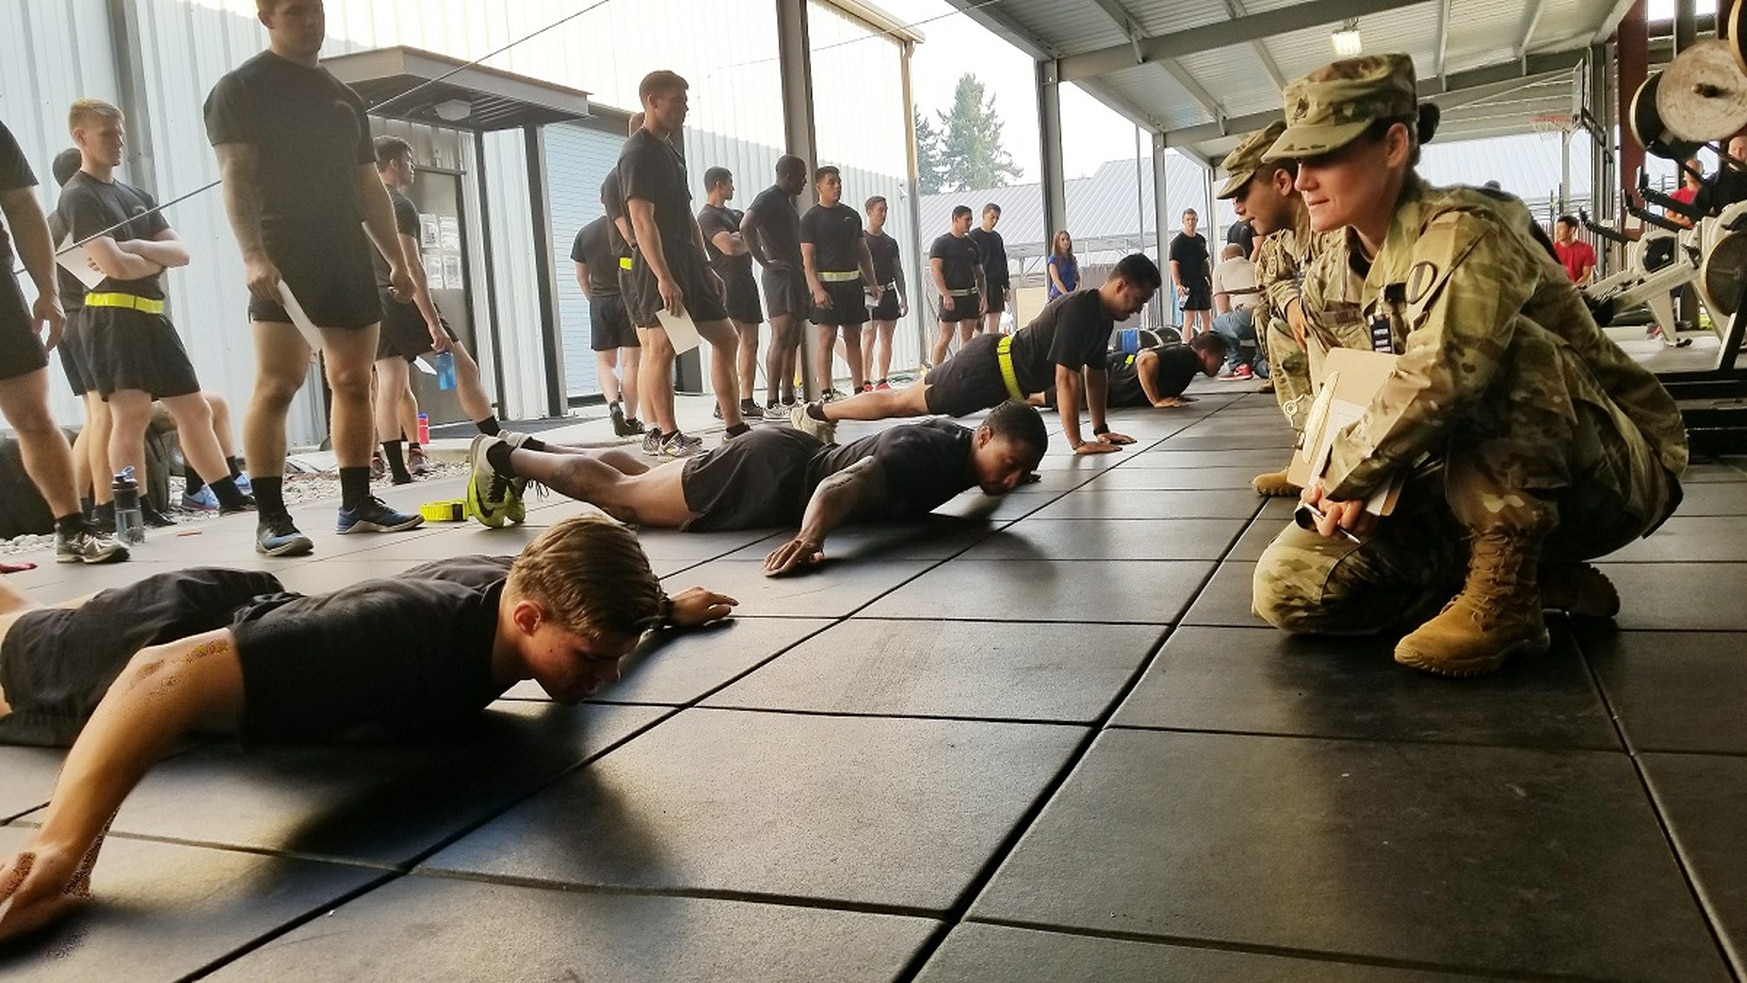 An Army Reserve soldier and master fitness trainer with the Army Physical Fitness School observes for proper form as soldiers assigned to 2nd Battalion, 75th Ranger Regiment at Joint Base Lewis-McChord, Washington, perform T pushups. (Stephanie Slater/Army)